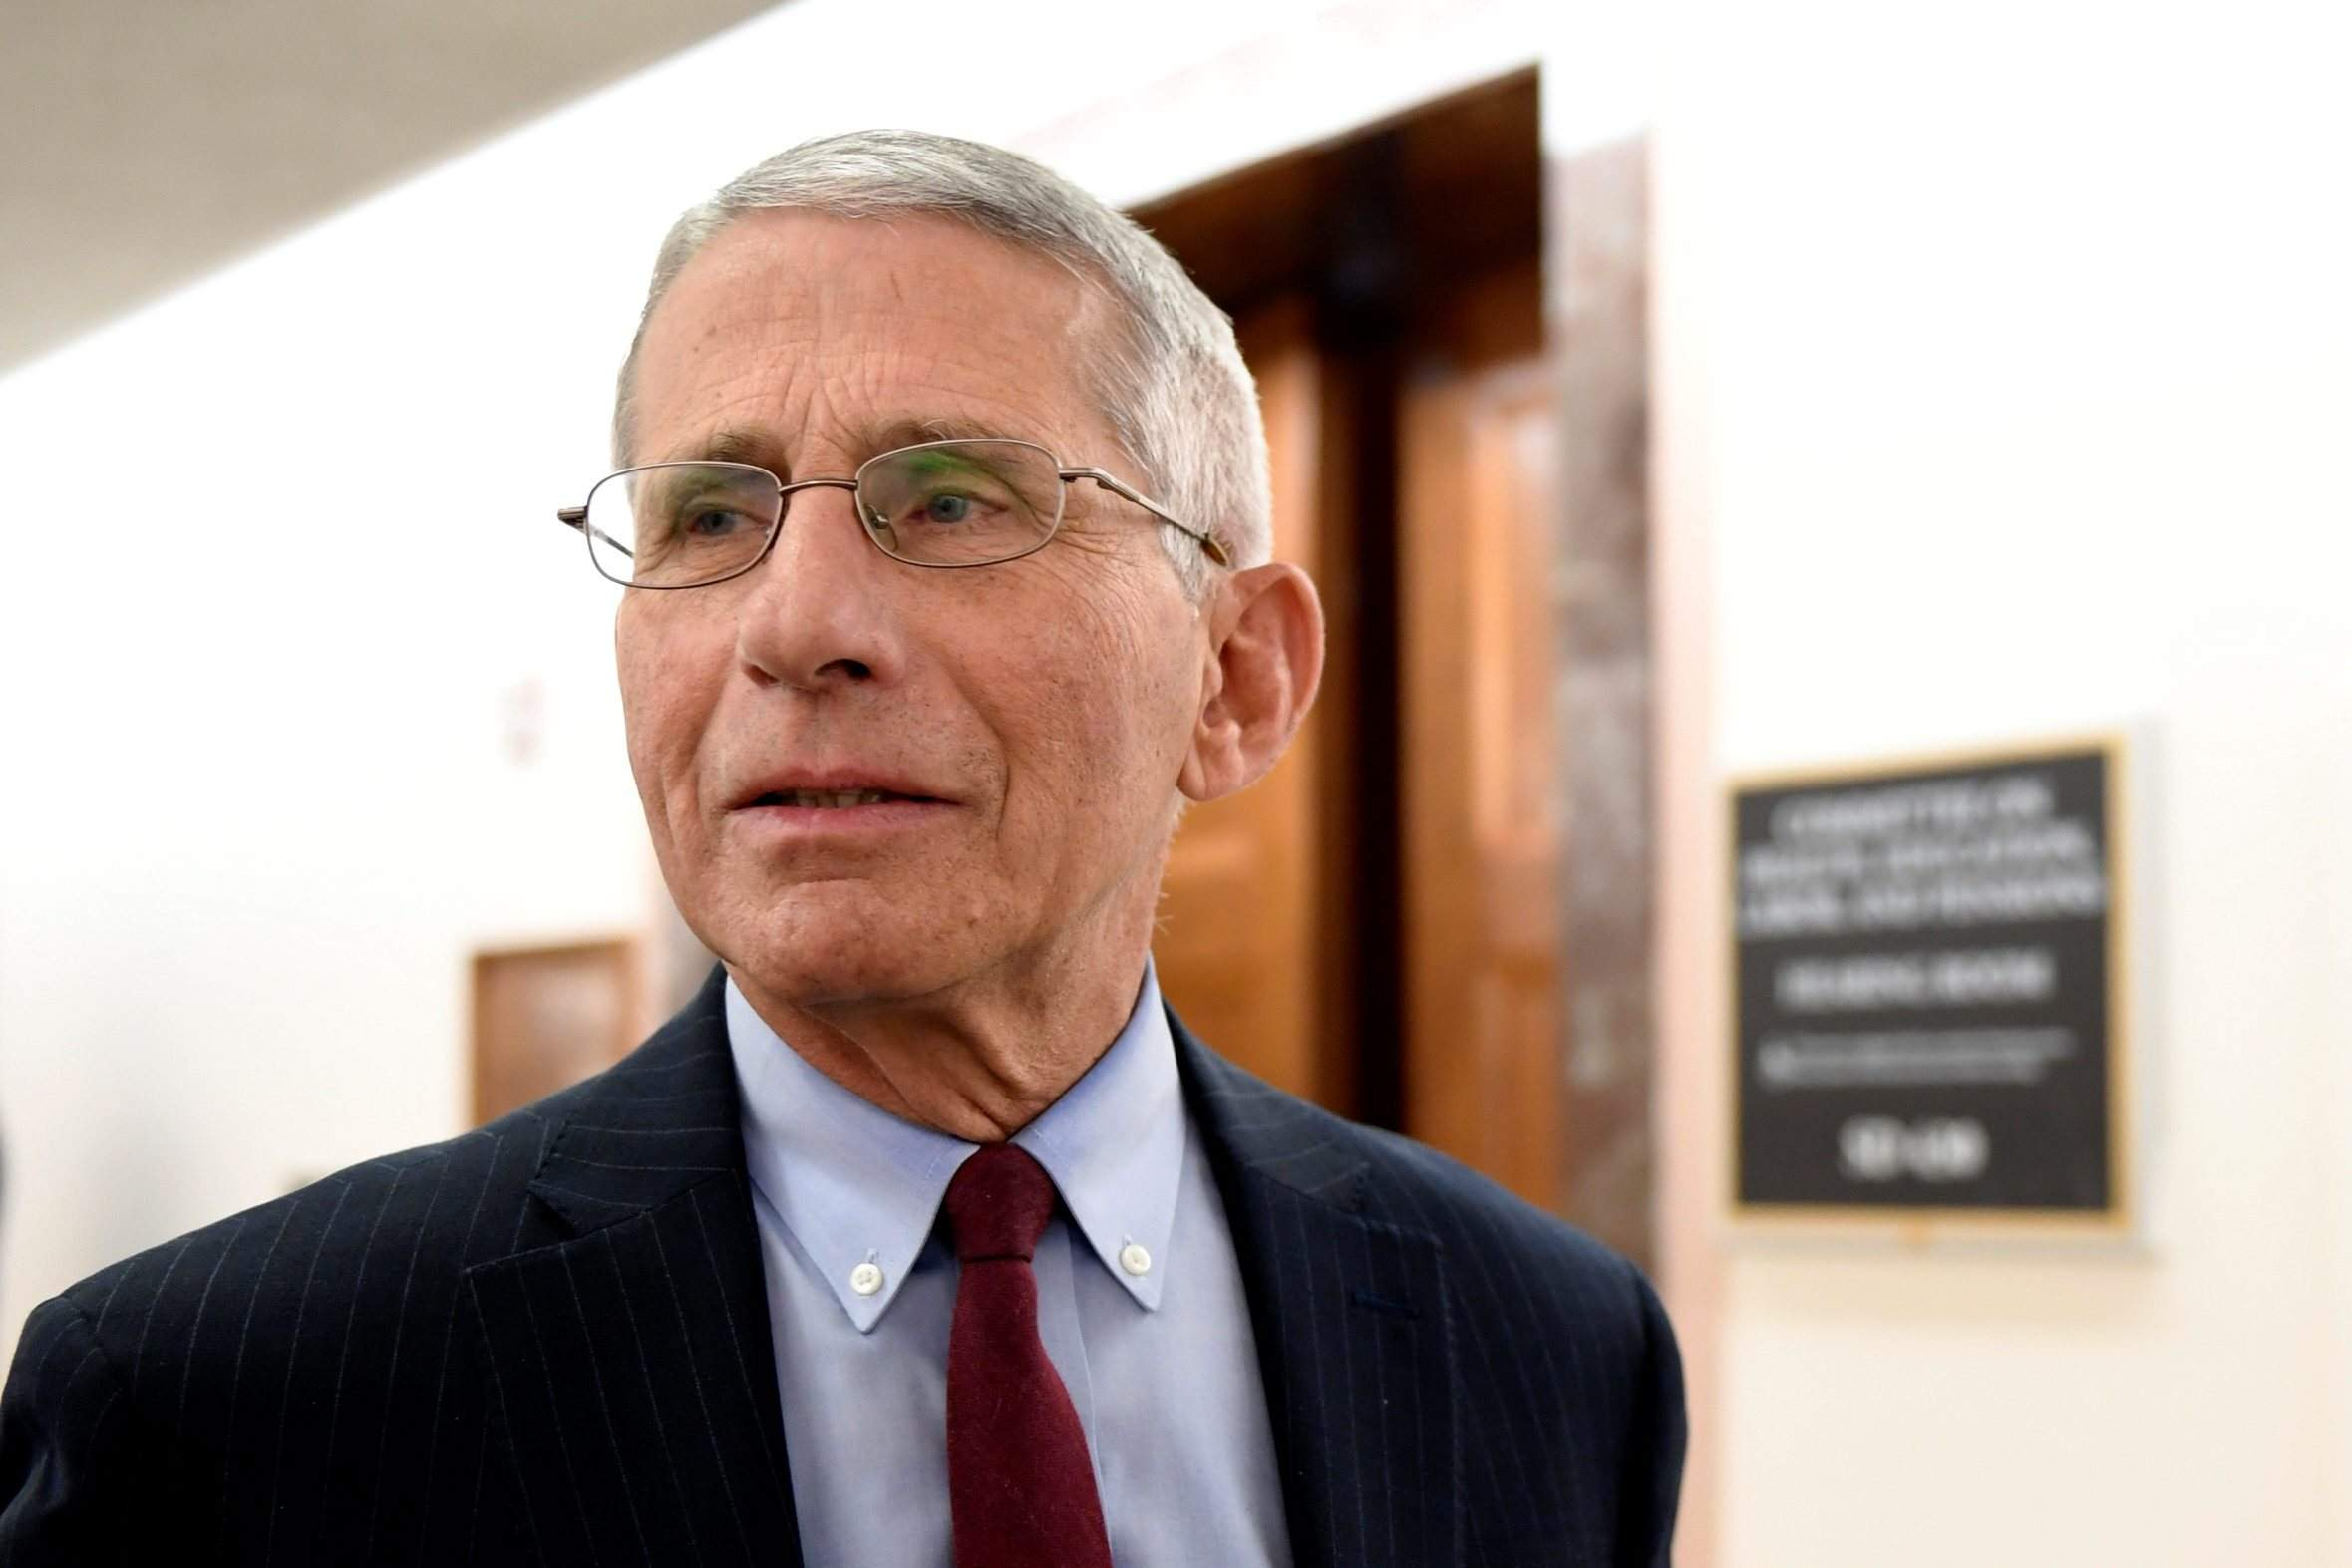 National Football League still plans on season despite Dr. Fauci's concerns